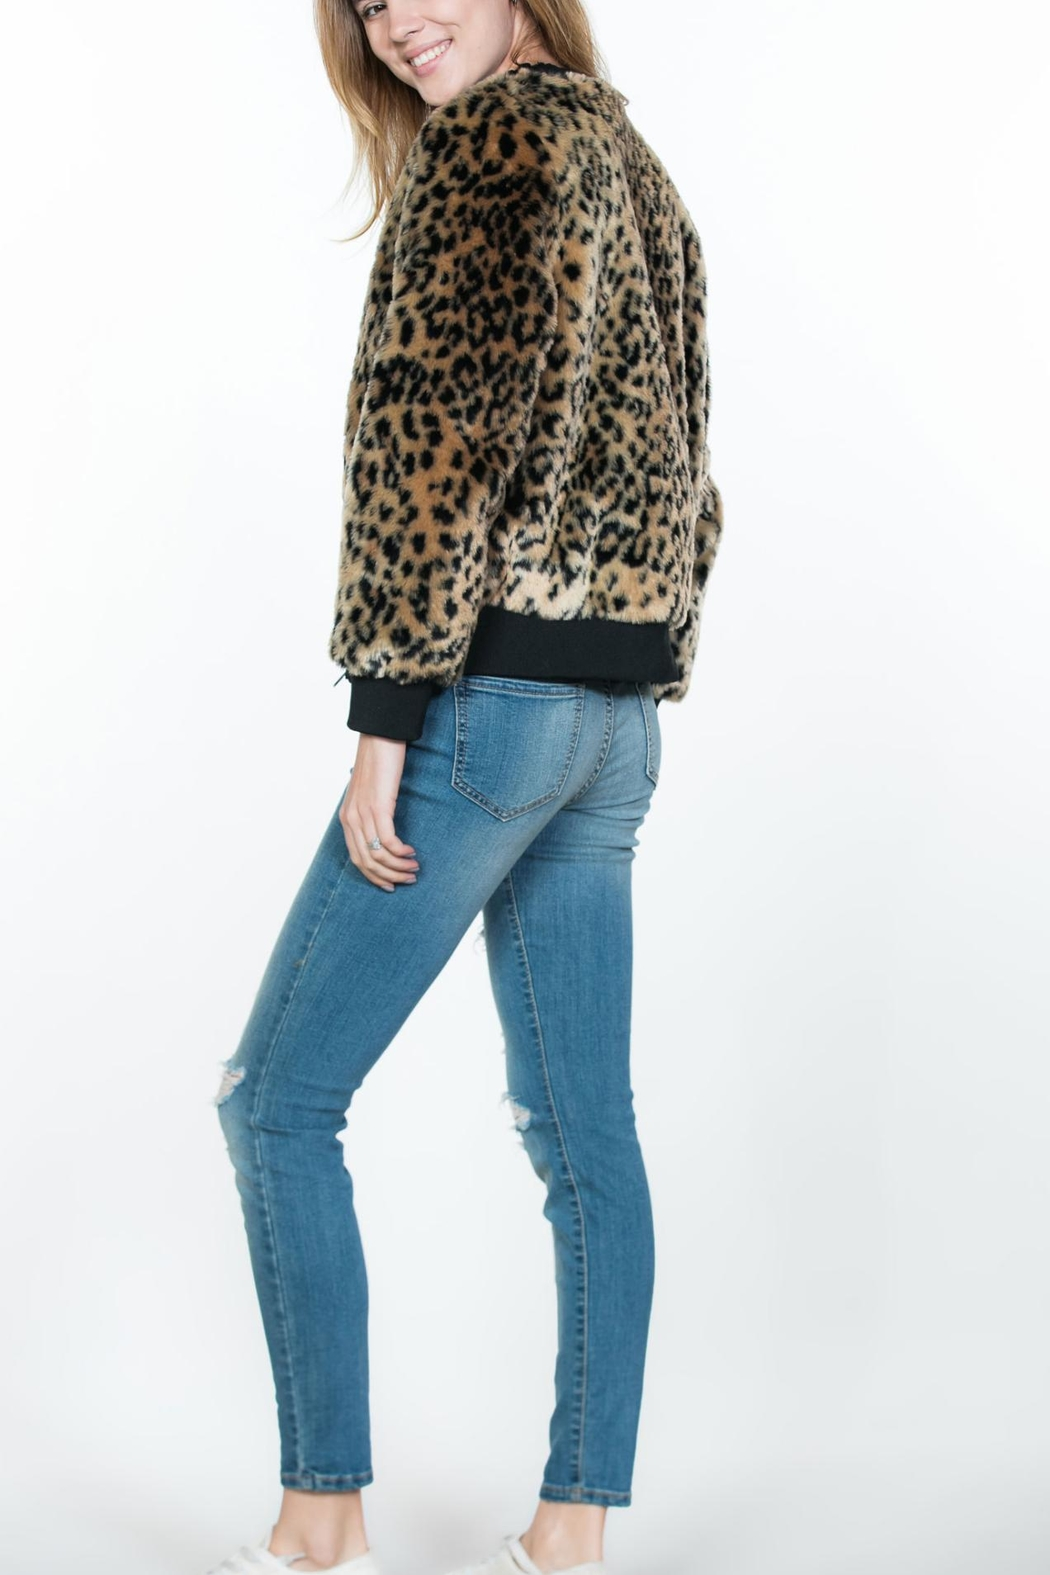 Ark & Co. Leopard Animal-Print Jacket - Front Full Image